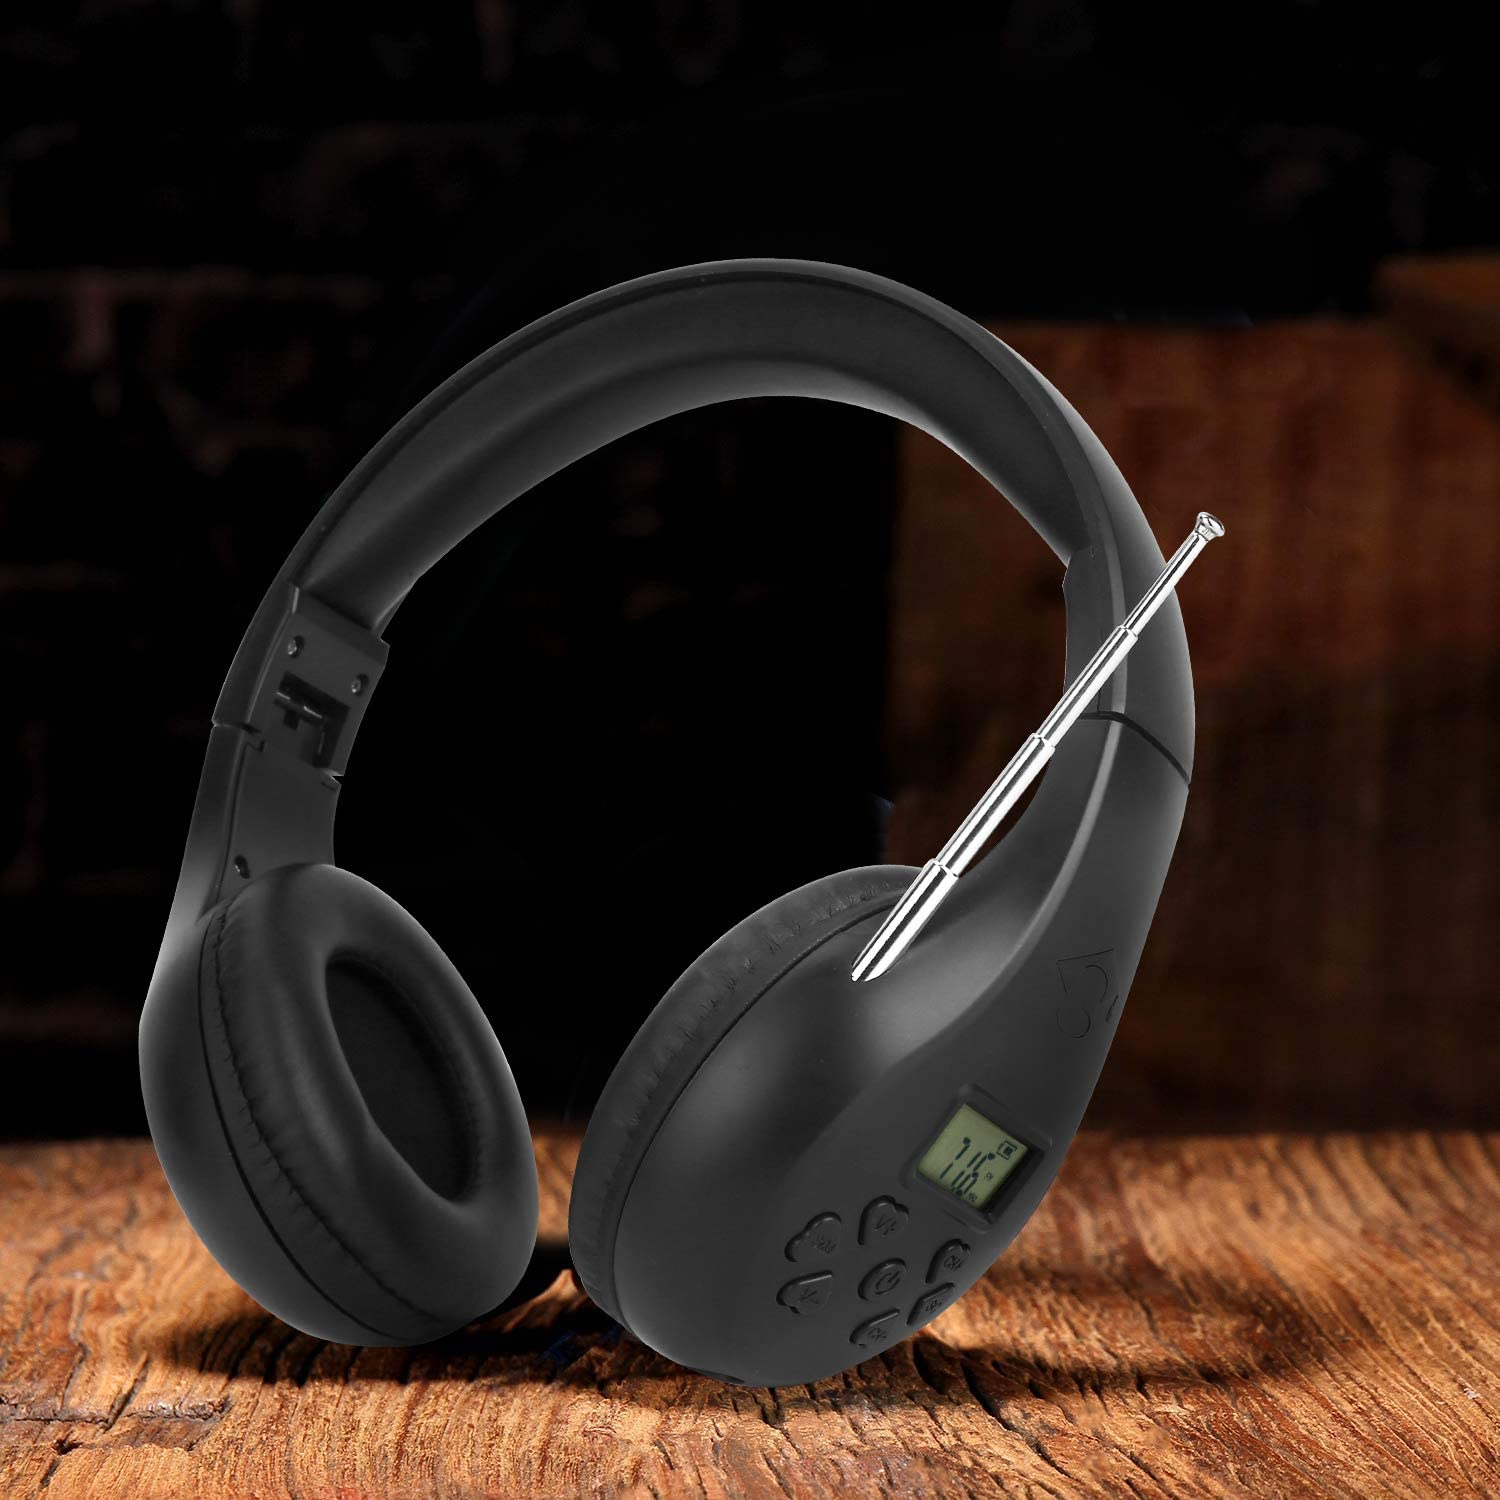 Portable Personal FM Radio Headphones with Best Reception, Walkman Wireless Headset FM Radio Ear Muffs for Walking, Jogging Powered by 2 AA Batteries(Not Included) -Black: Home Audio & Theater